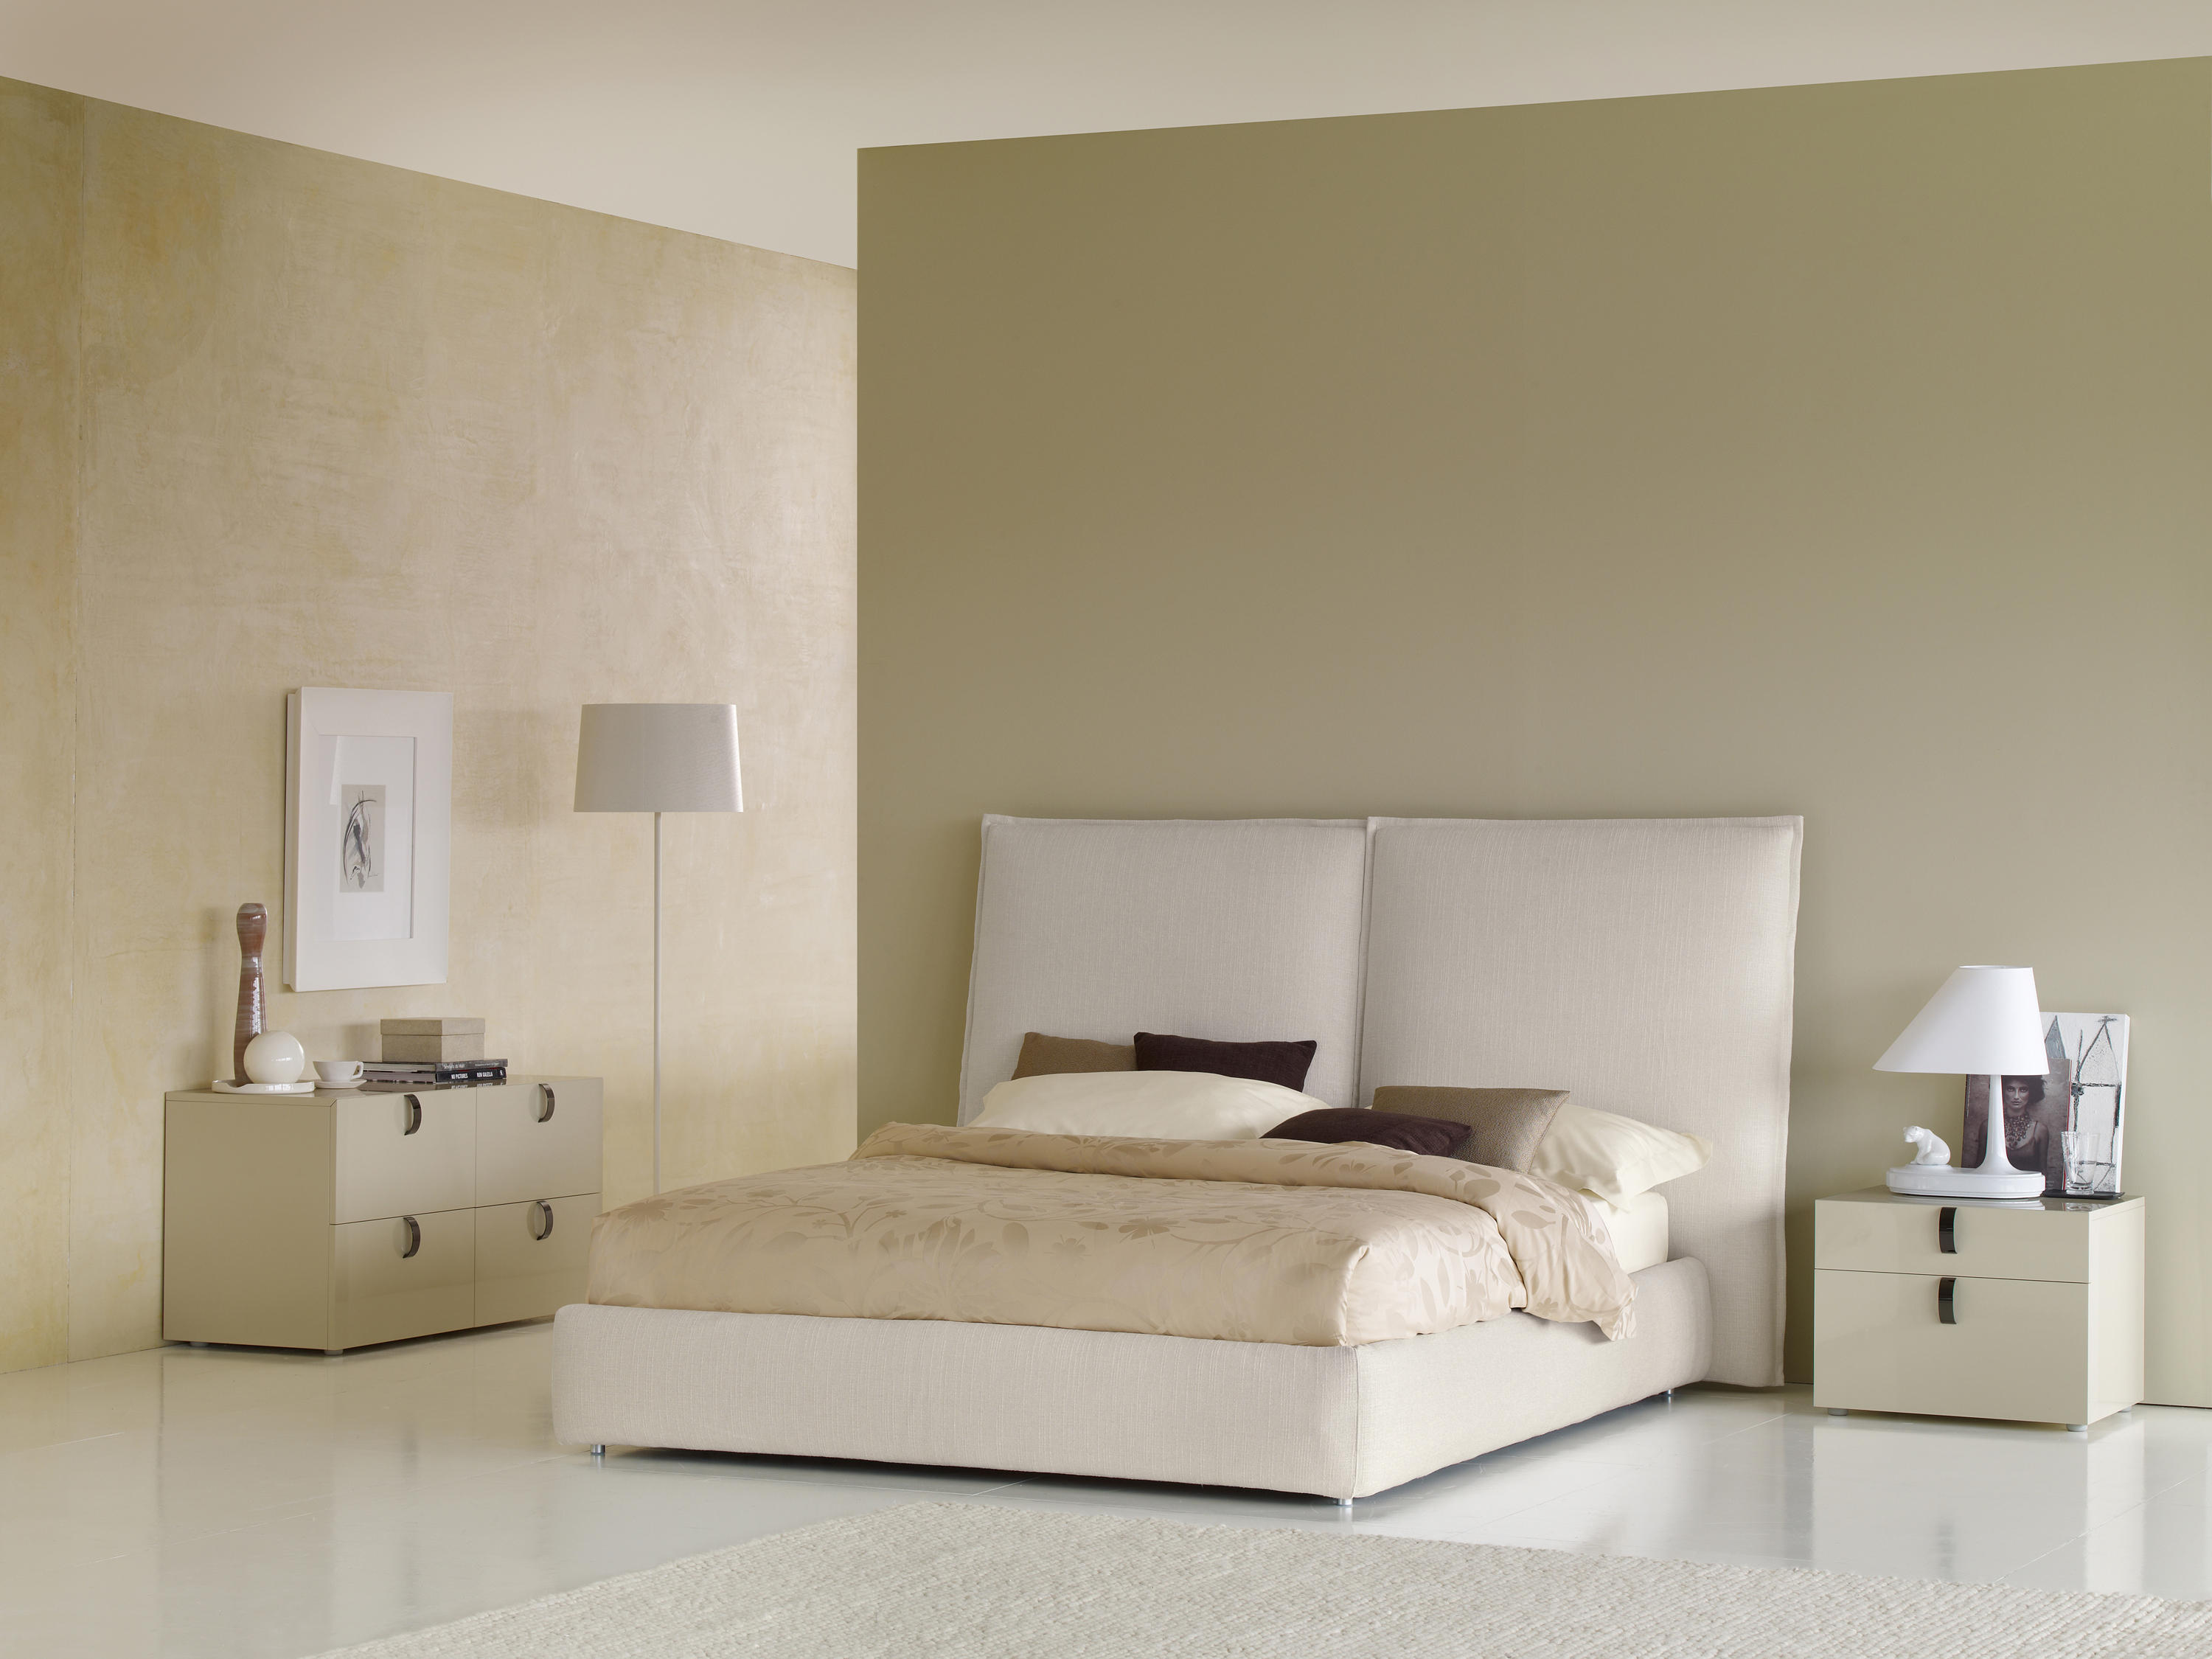 Angle Quilted Headboard Double Beds From Flou Architonic